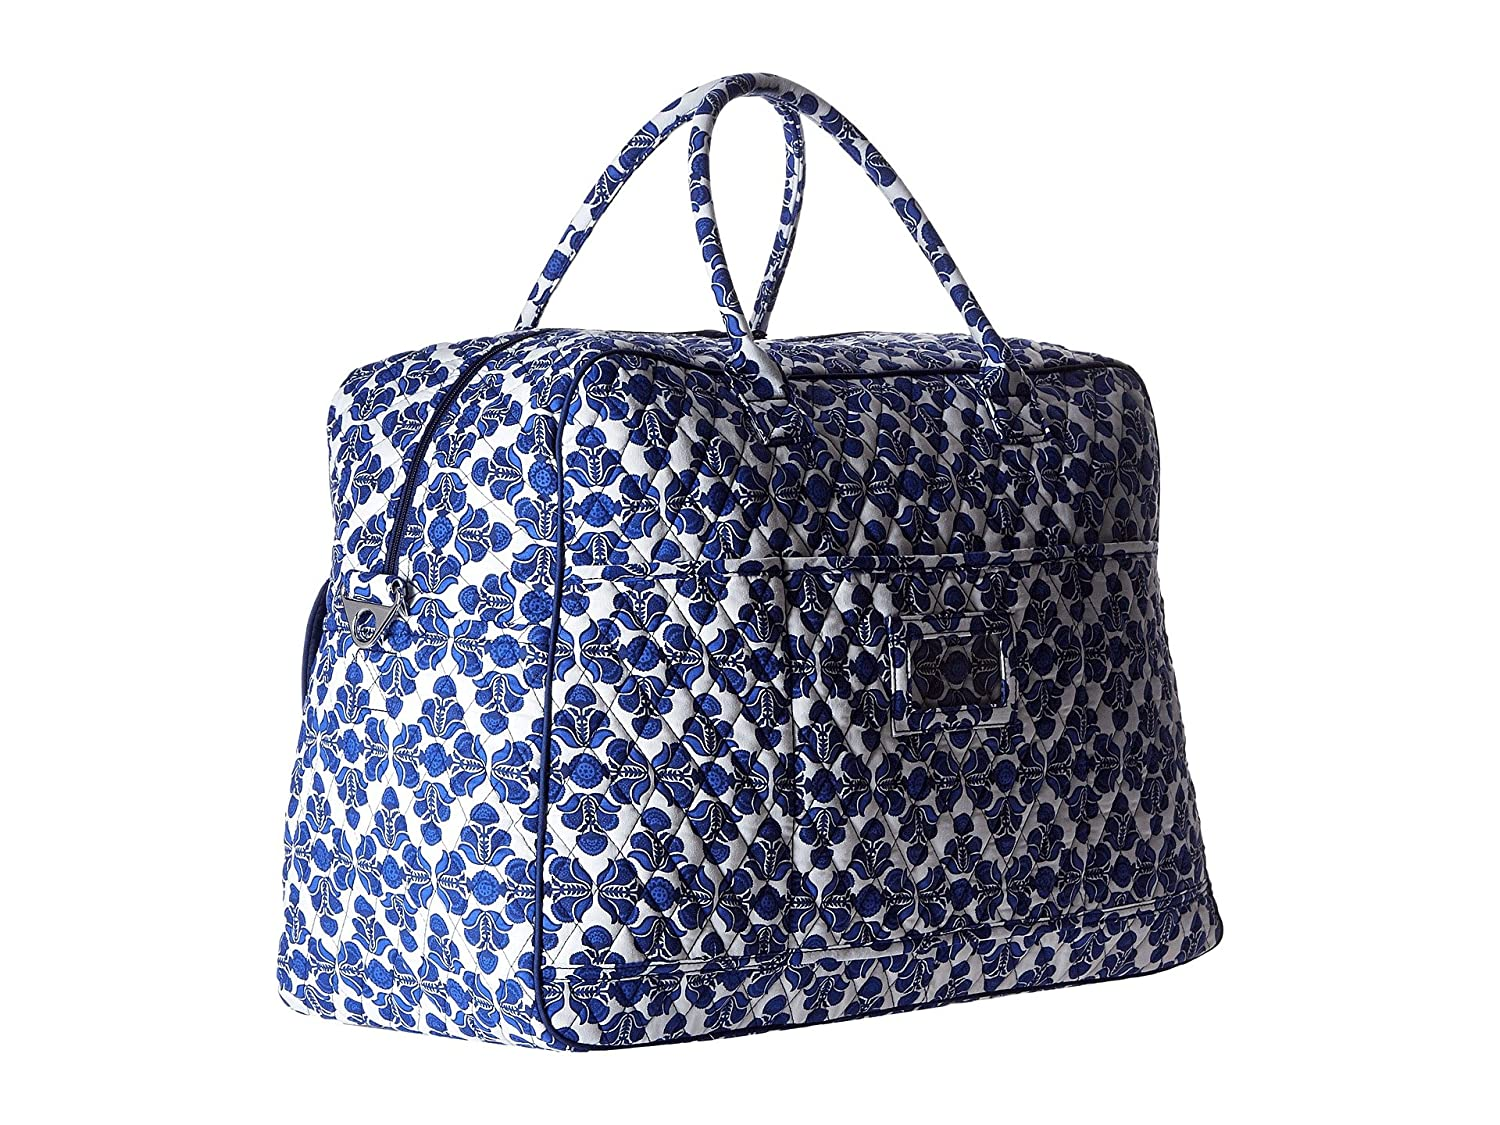 4d9a04098310 Vera Bradley Luggage Womens Grand Traveler Cobalt Tile Travel Tote   Amazon.co.uk  Clothing